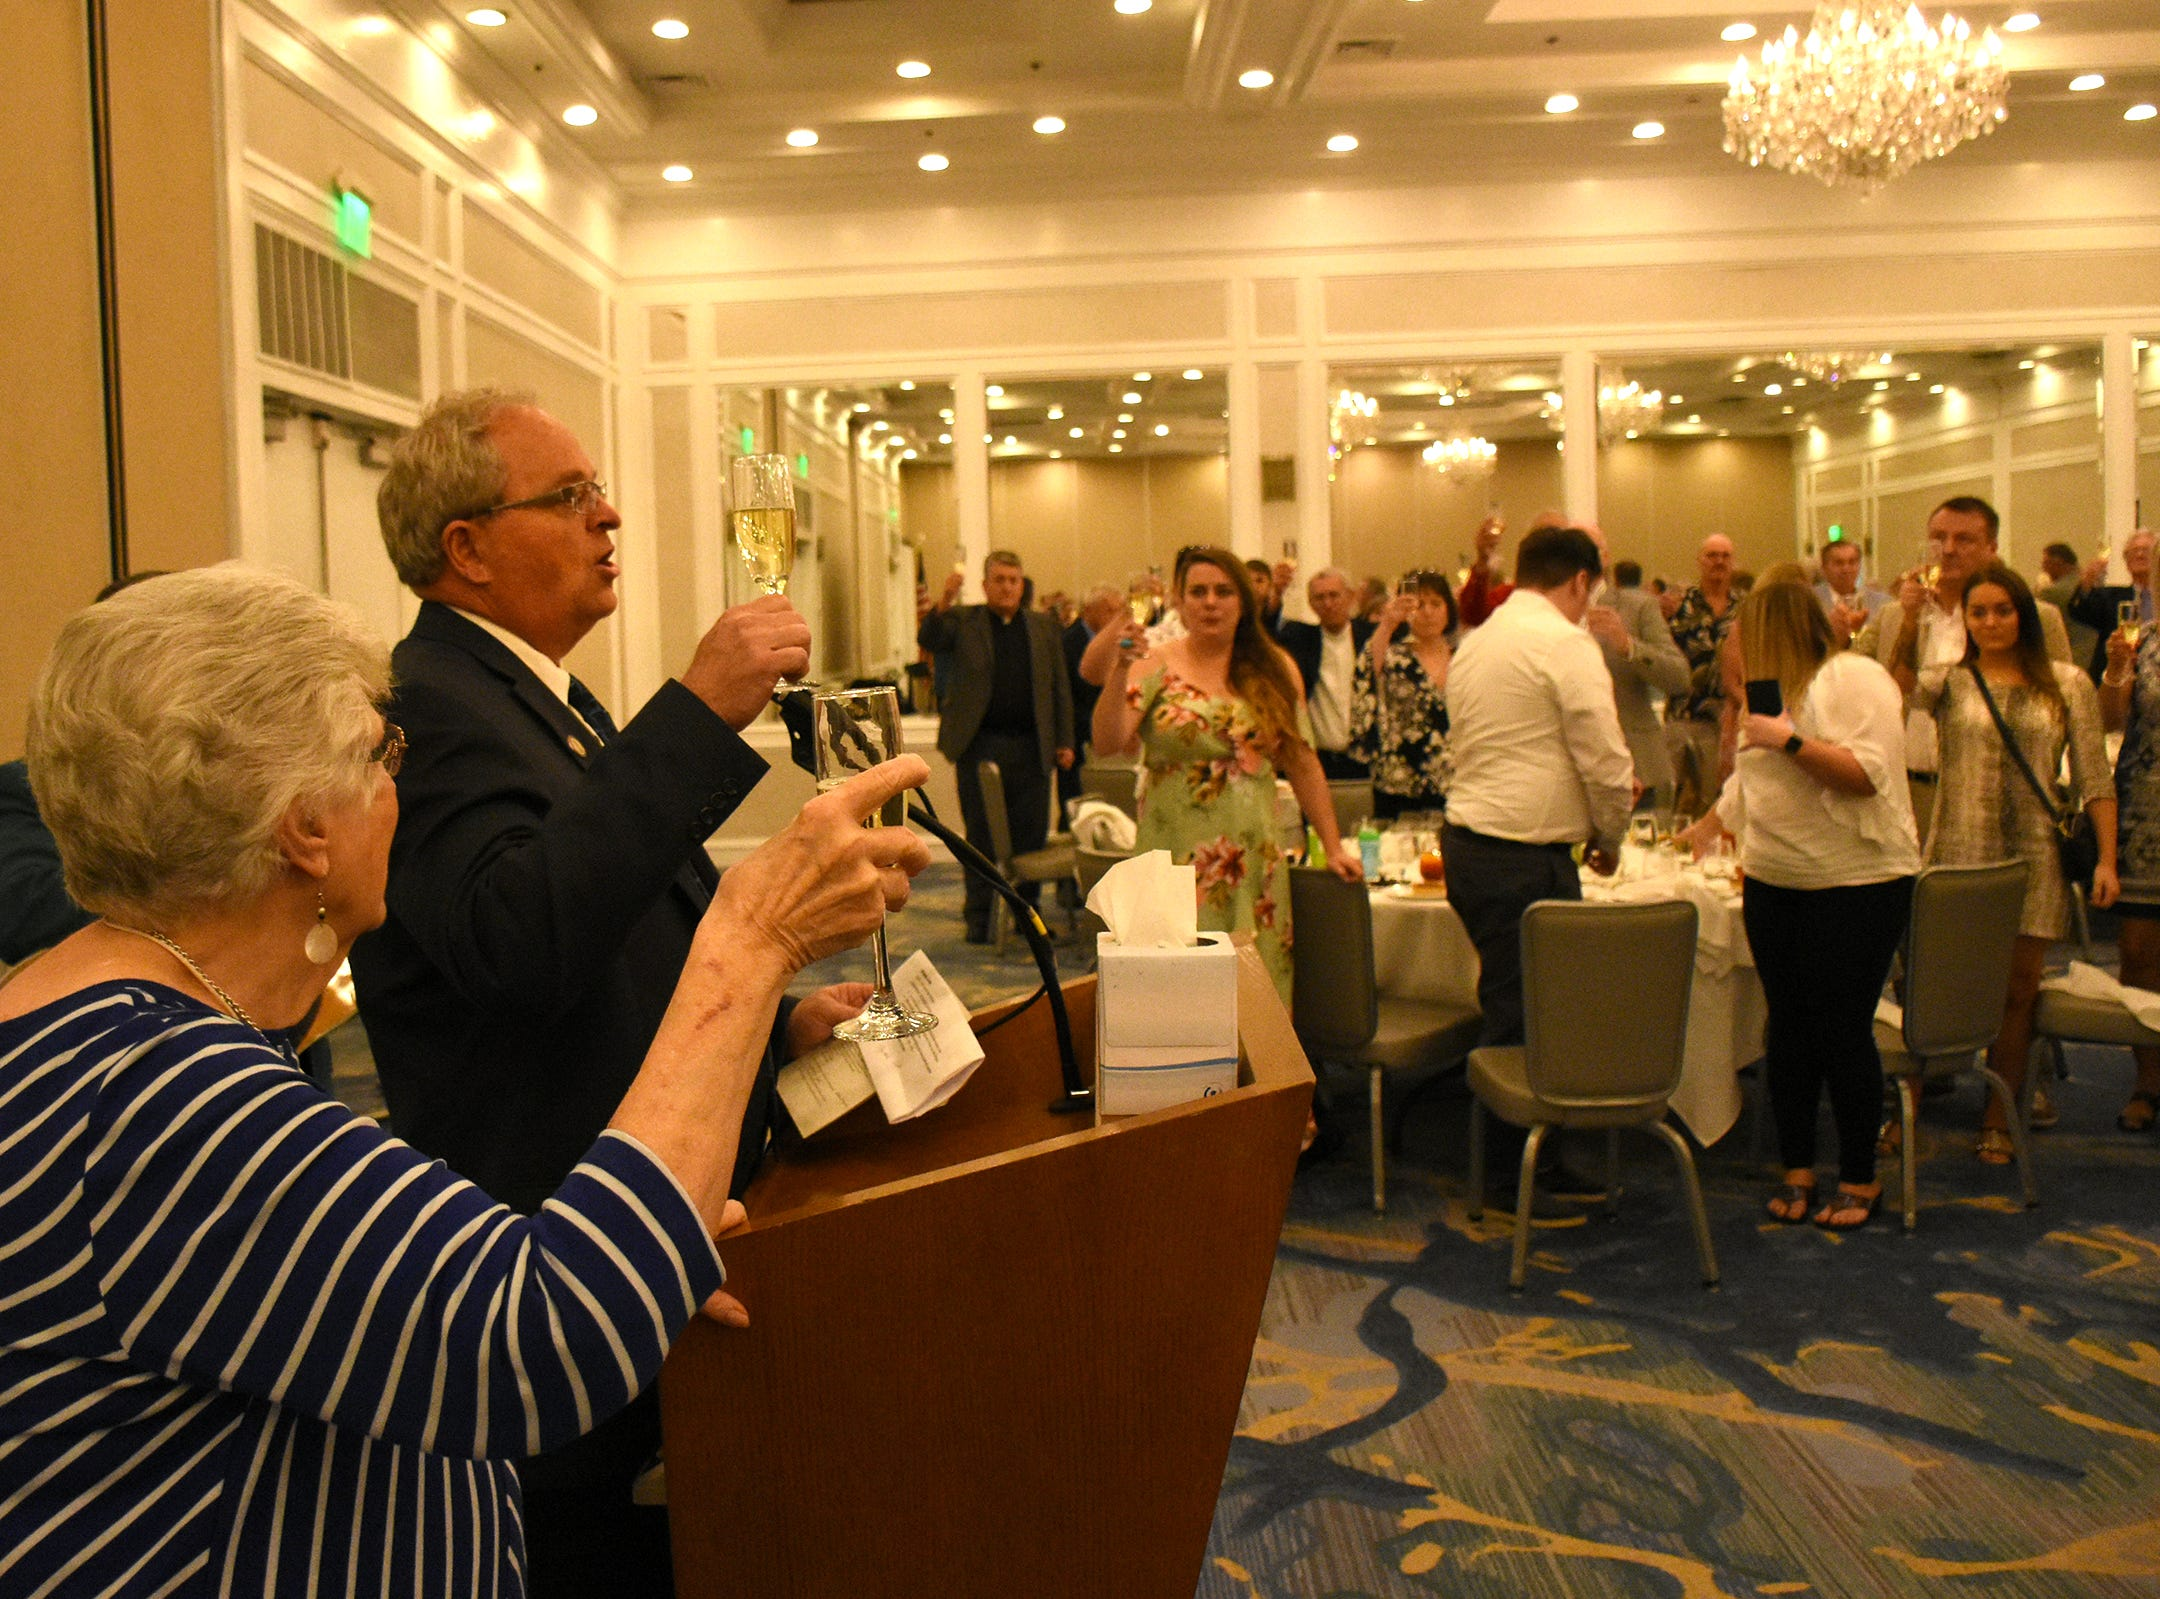 Herb Savage's wife, Emily Savage, joins emcee Craig Woodward in a toast to her late husband. Marco Island paid tribute on Saturday, Jan. 5, 2019, to Herb Savage, who would have turned 100 years old on Sunday but died five days short of the century mark. The birthday party at the Hilton Marco Island instead became a celebration of his life.